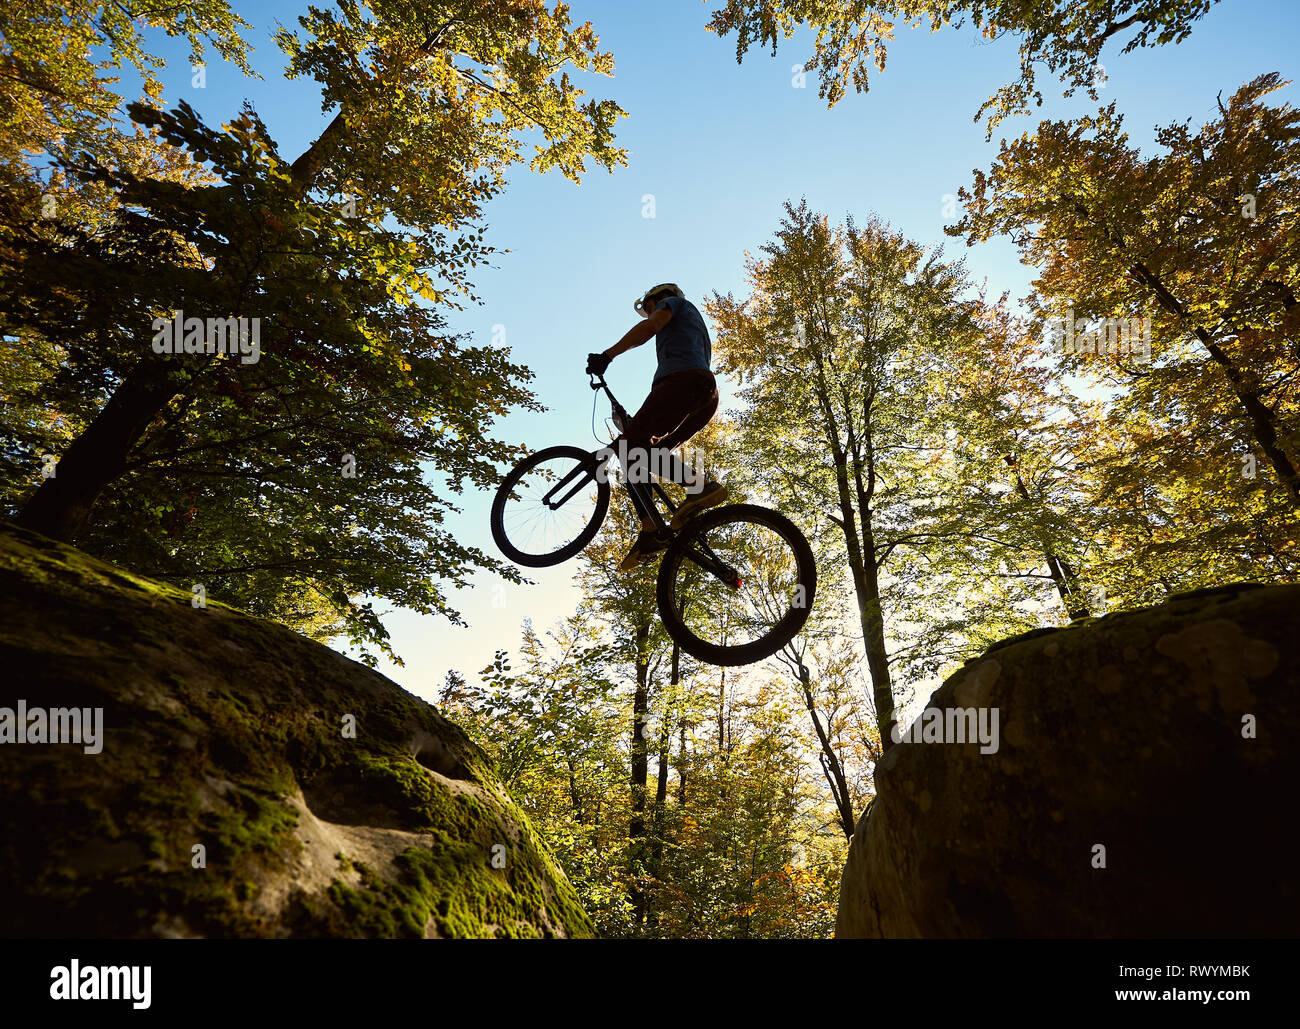 Young male biker jumping on trial bicycle between two big boulders, professional rider making acrobatic trick in the forest on sunny day. Concept of extreme sport active lifestyle Stock Photo